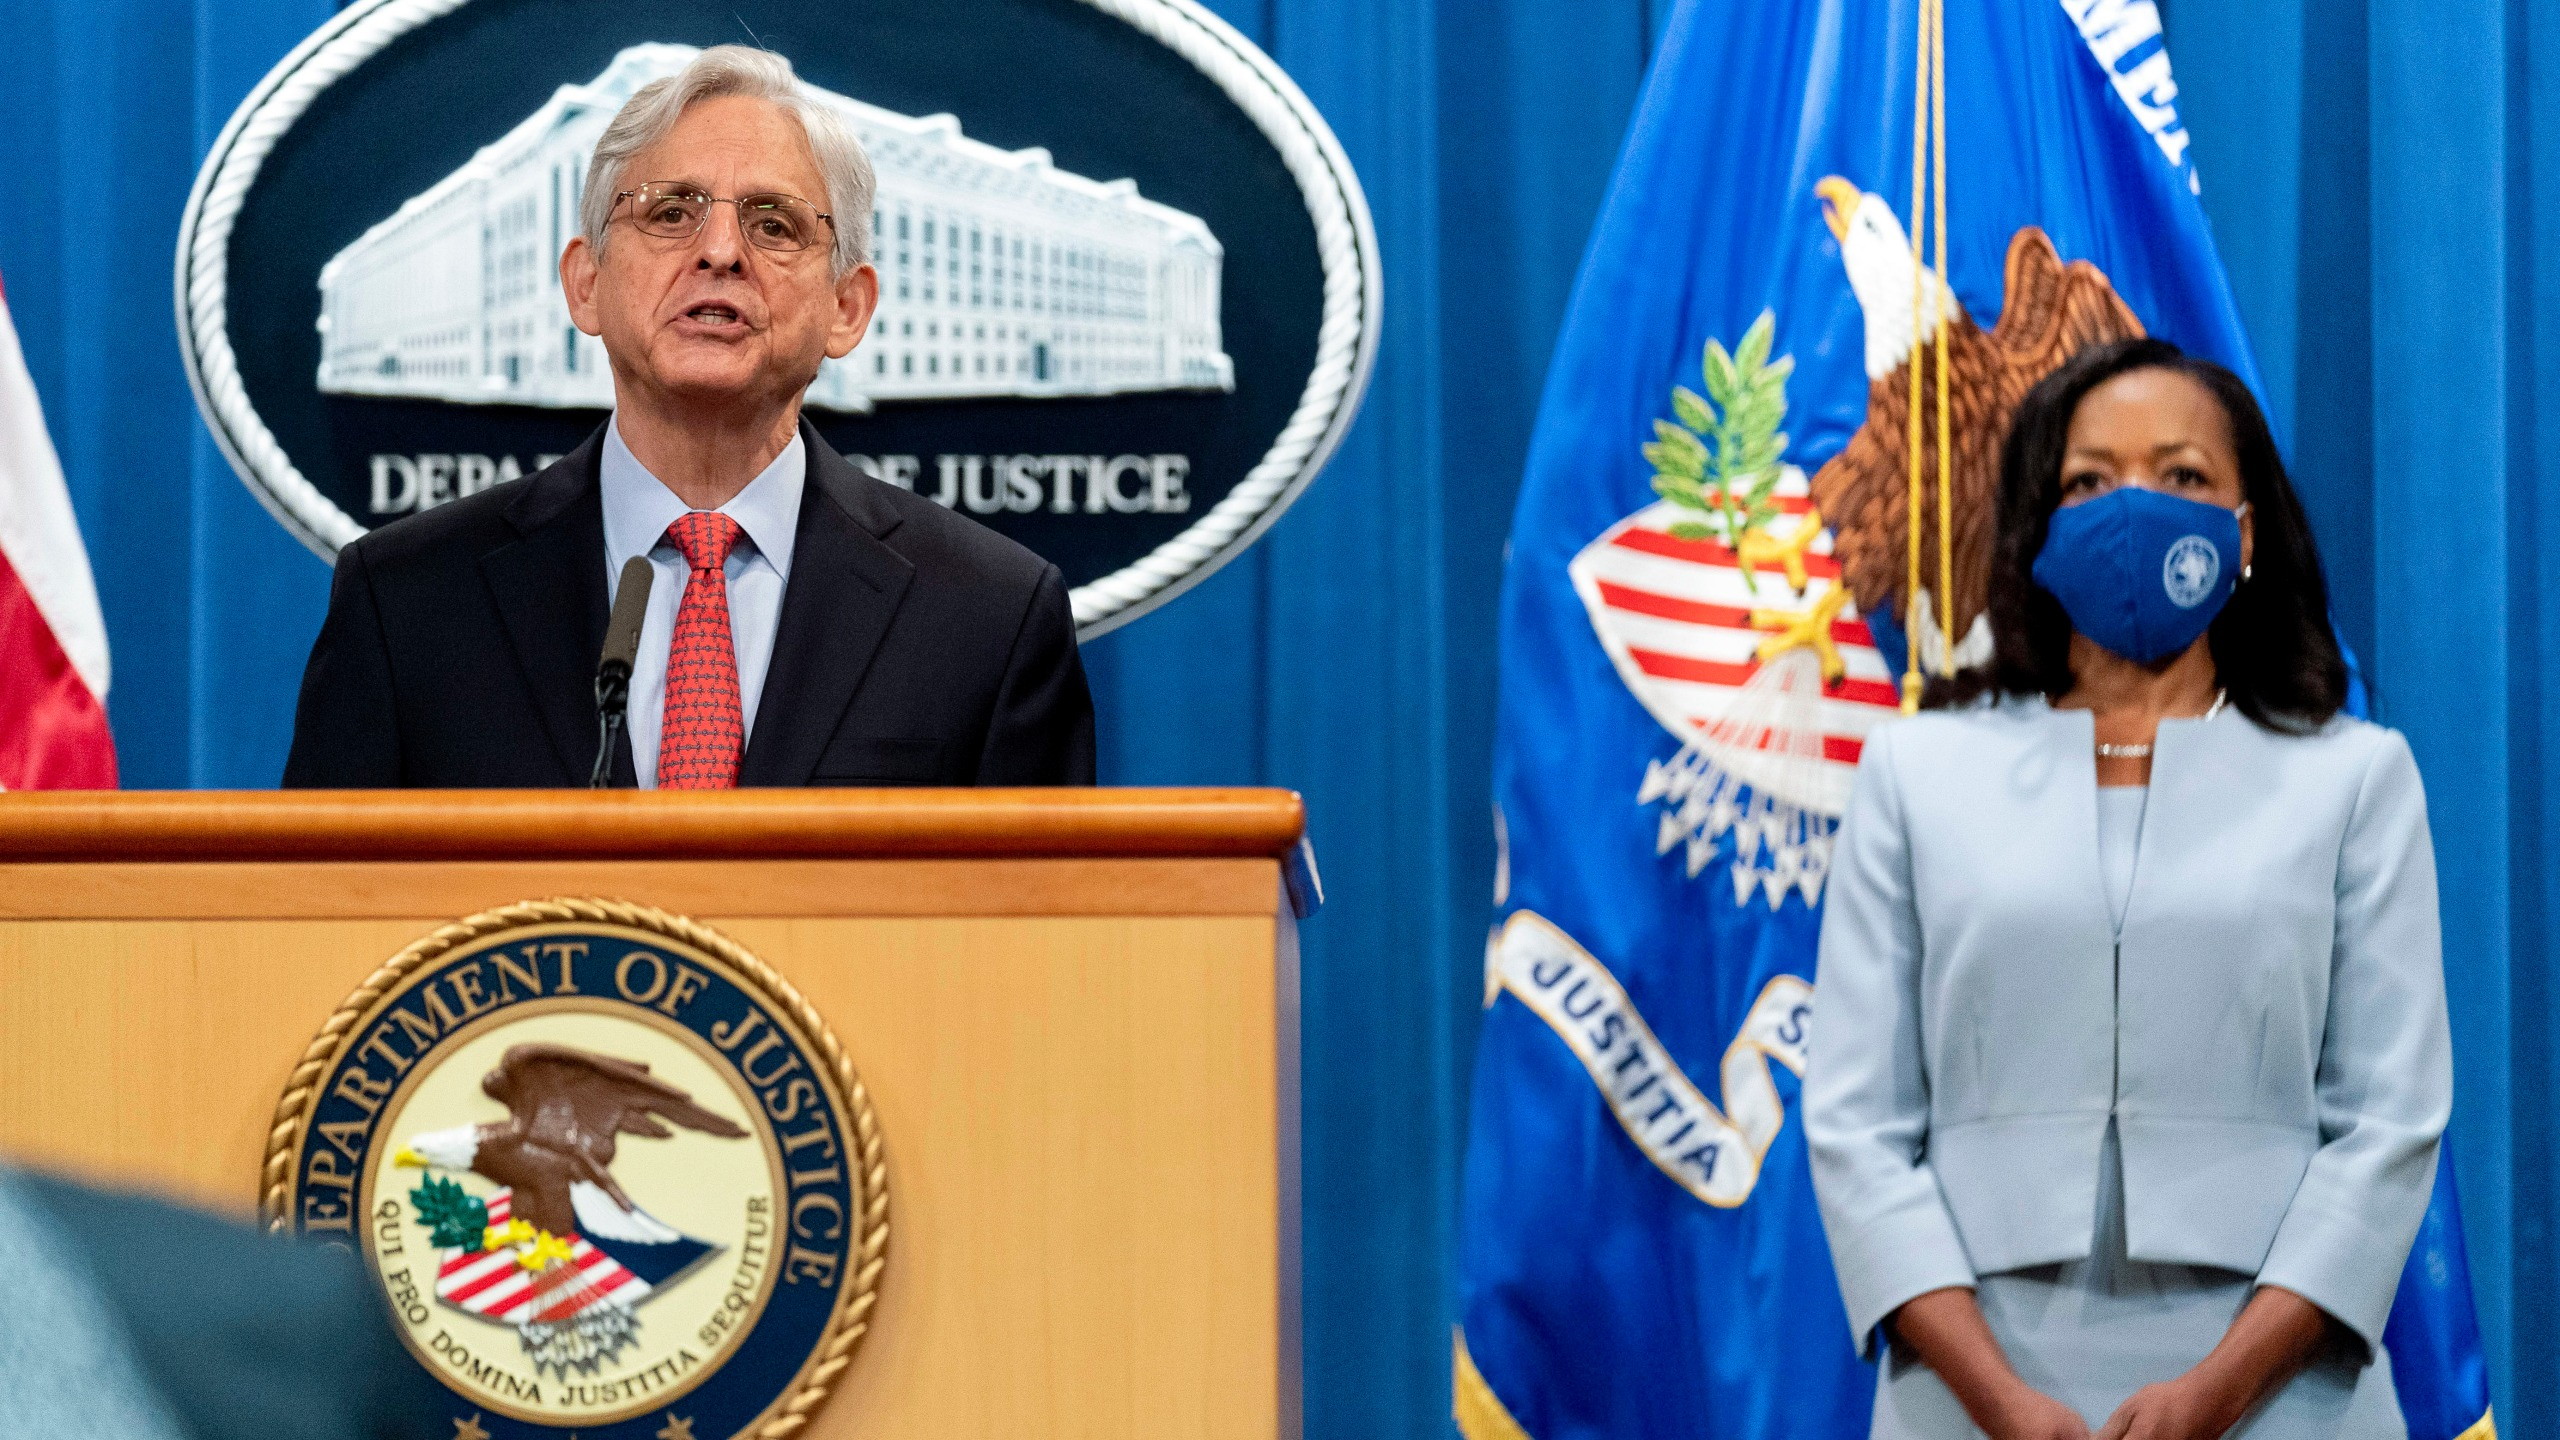 Attorney General Merrick Garland, accompanied by Assistant Attorney General for Civil Rights Kristen Clarke, right, speaks at a news conference at the Department of Justice in Washington on Aug. 5, 2021, to announce that the Department of Justice is opening an investigation into the city of Phoenix and the Phoenix Police Department. (AP Photo/Andrew Harnik)